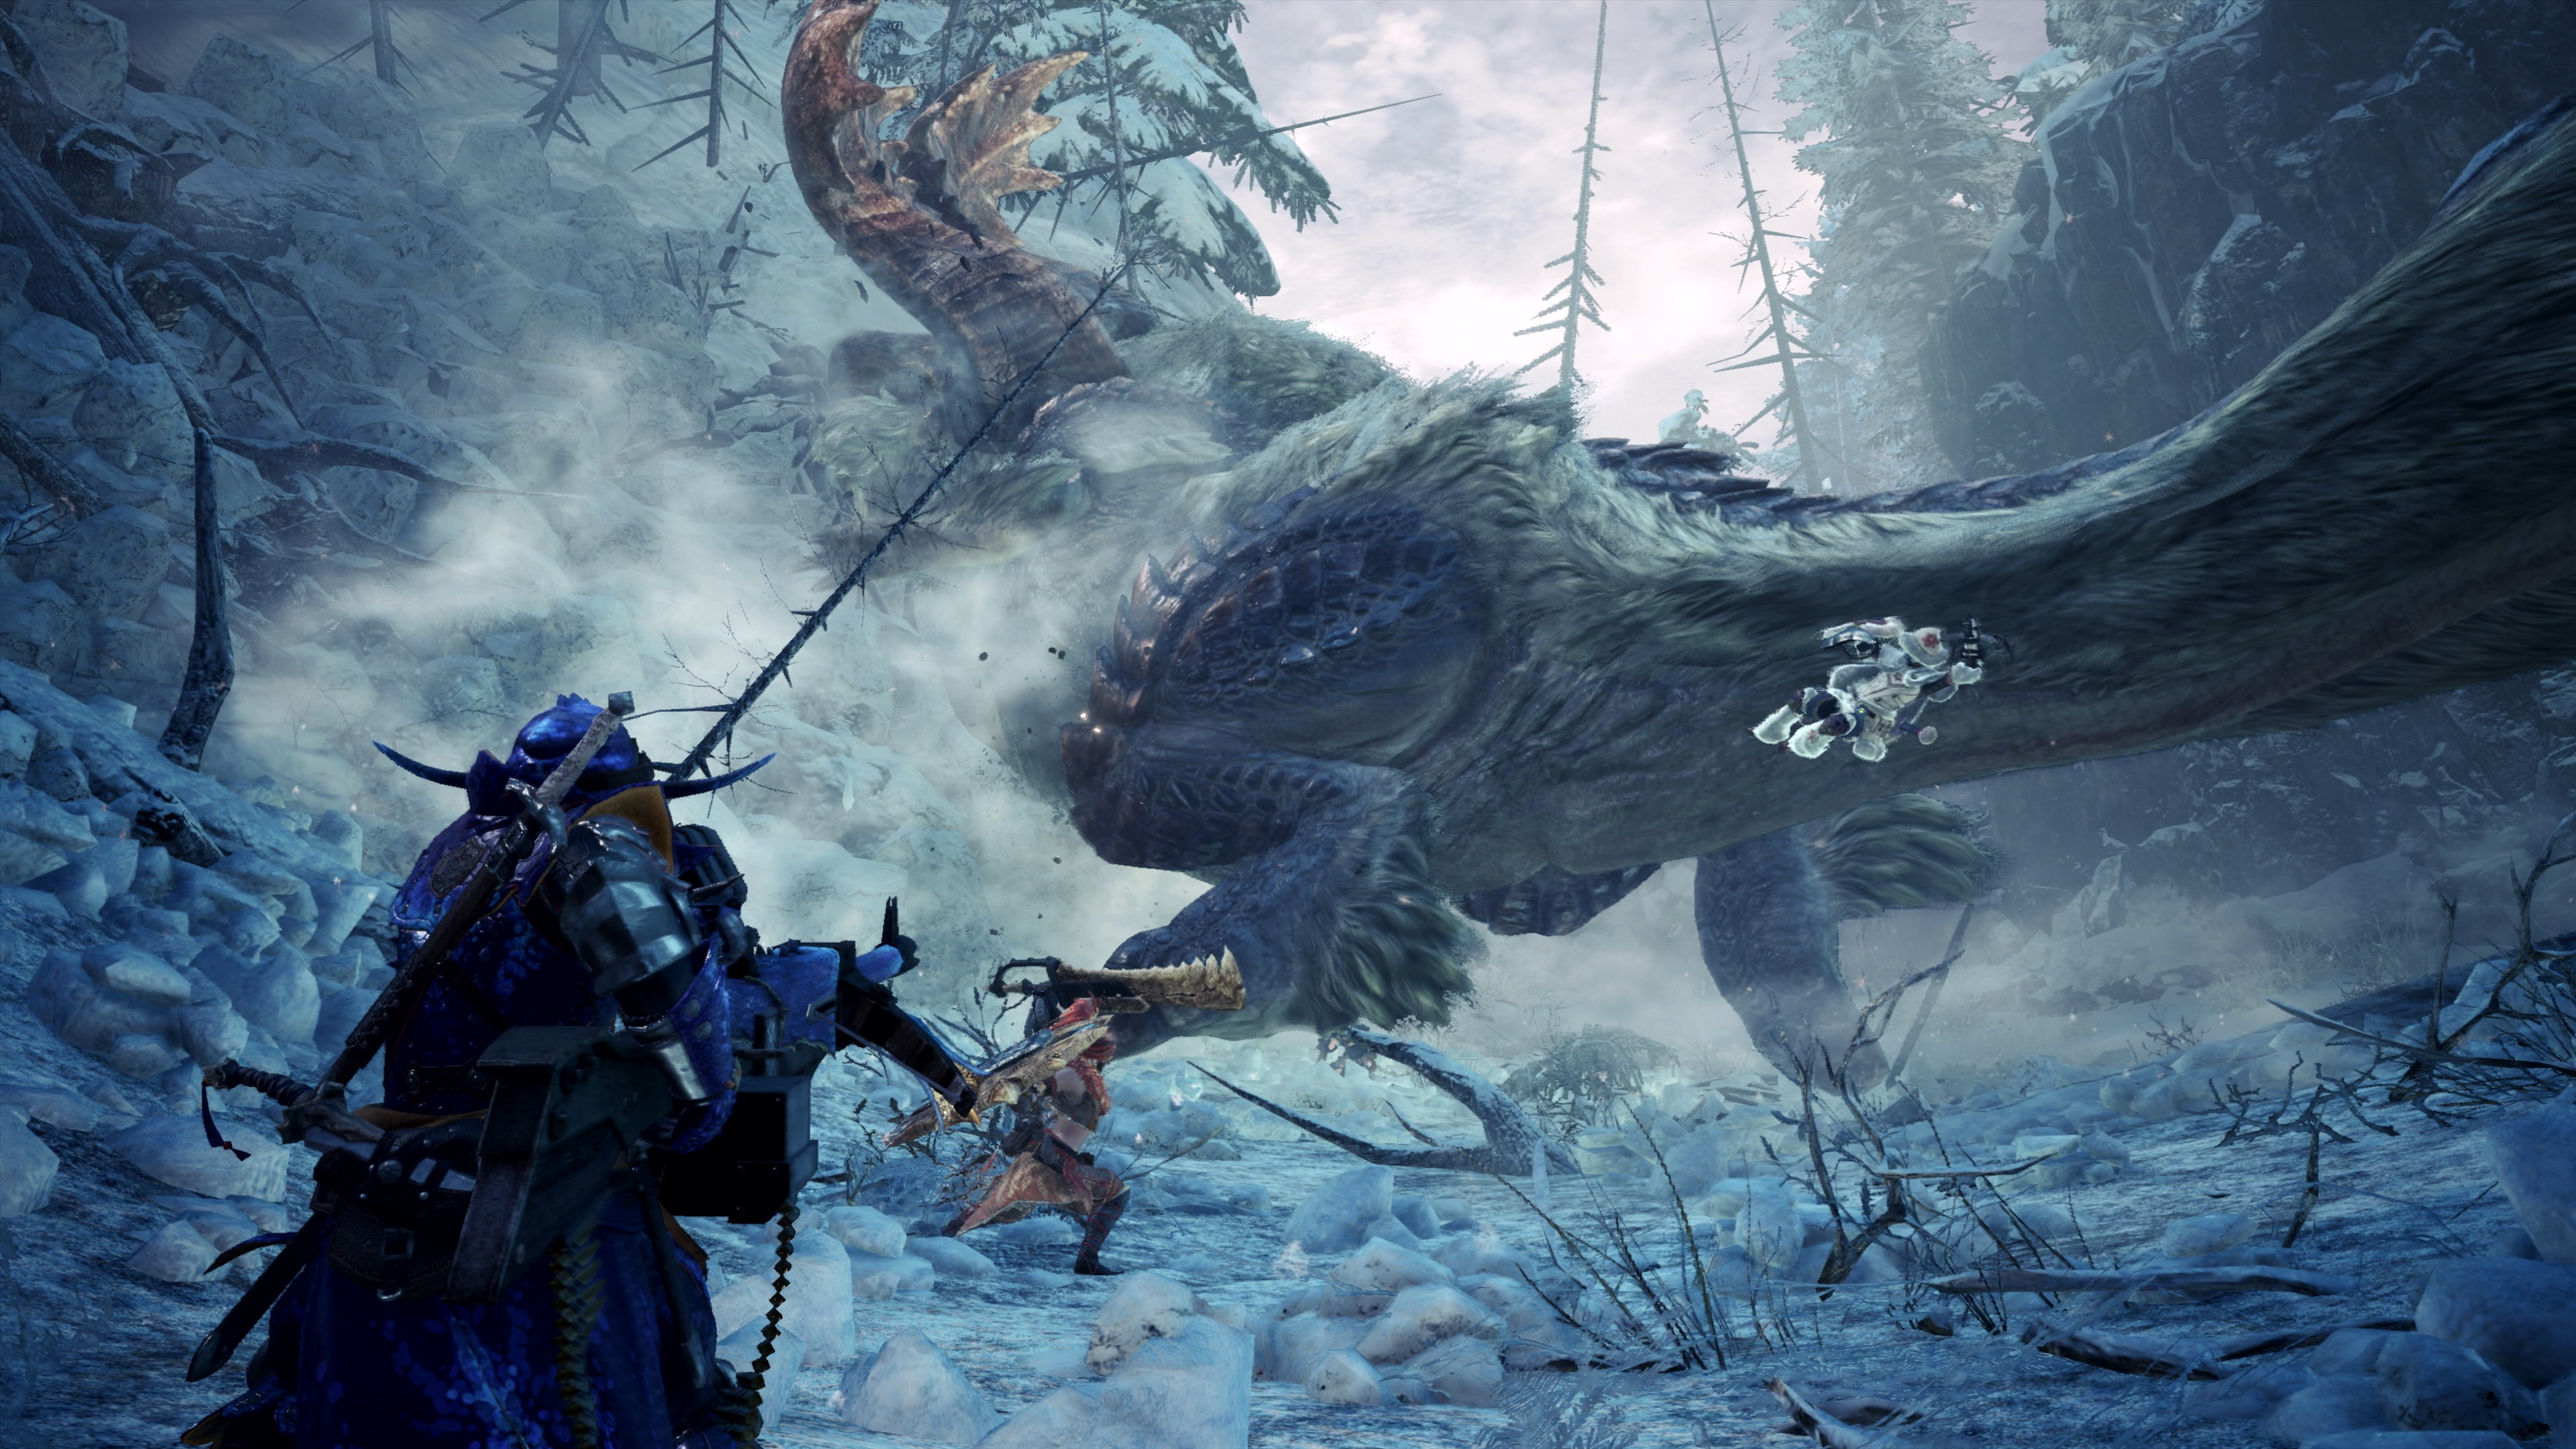 Monster Hunter World Iceborne Expansion Details Released, Massive Update To The Core Game